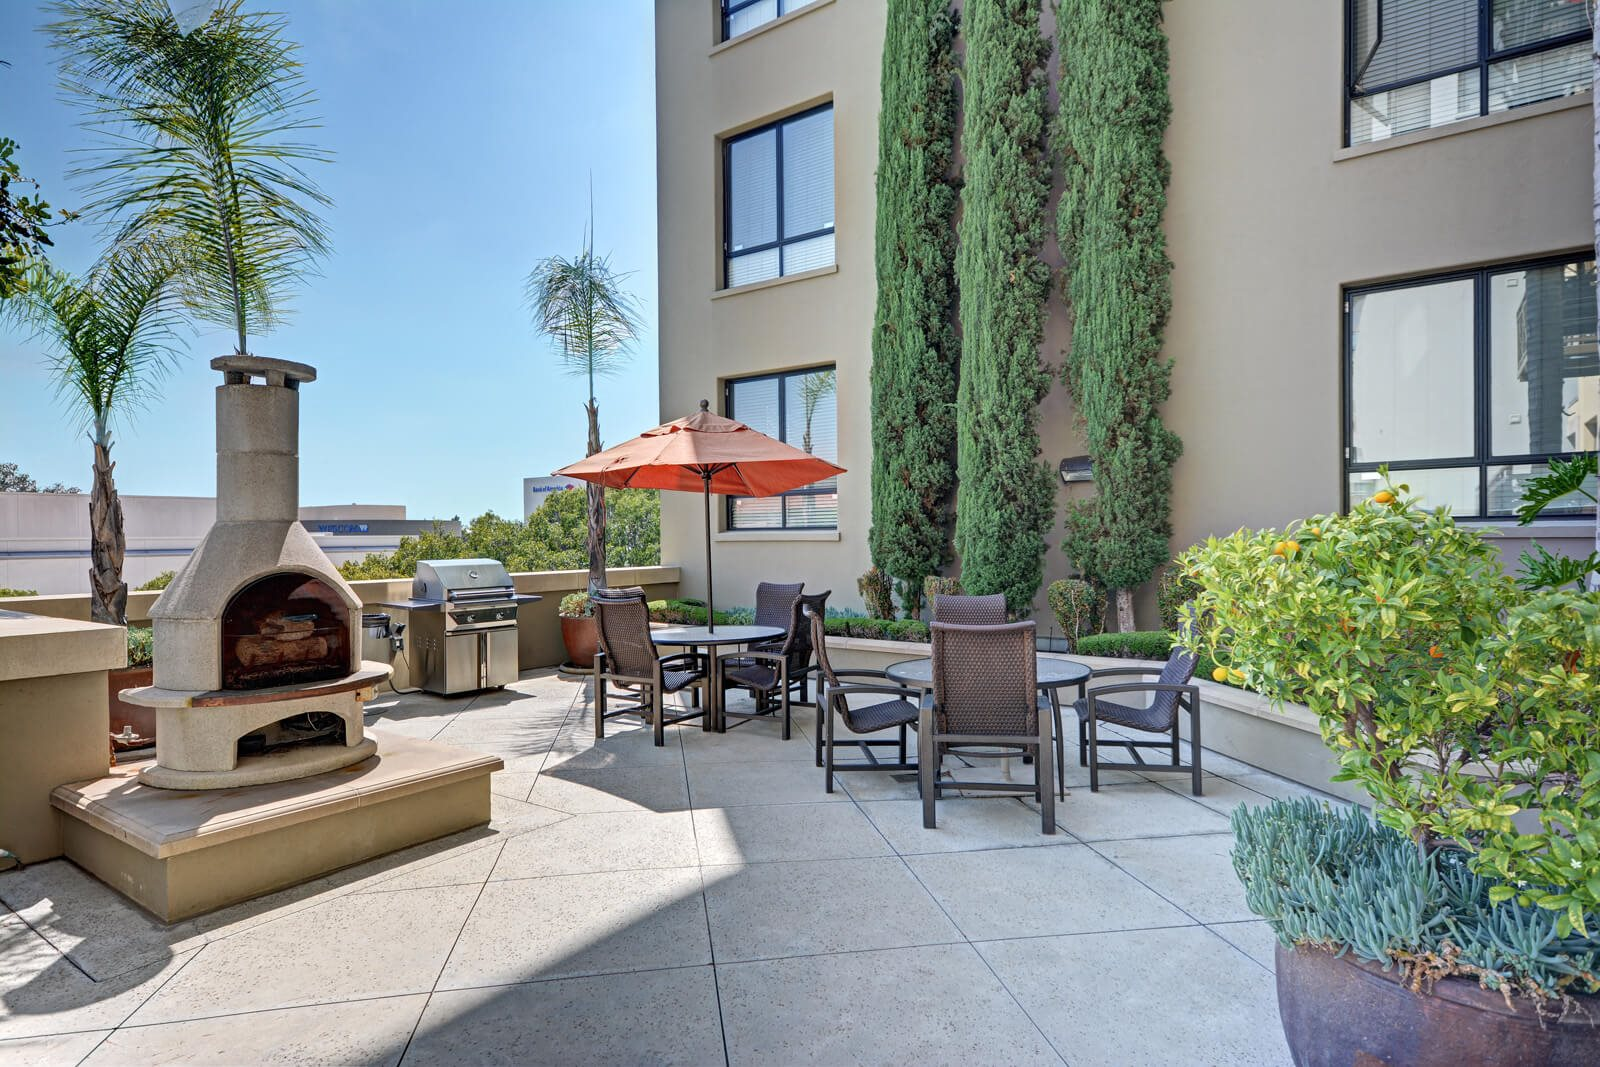 Grill and Fire Pit in Courtyard at Terraces at Paseo Colorado, 91101, CA